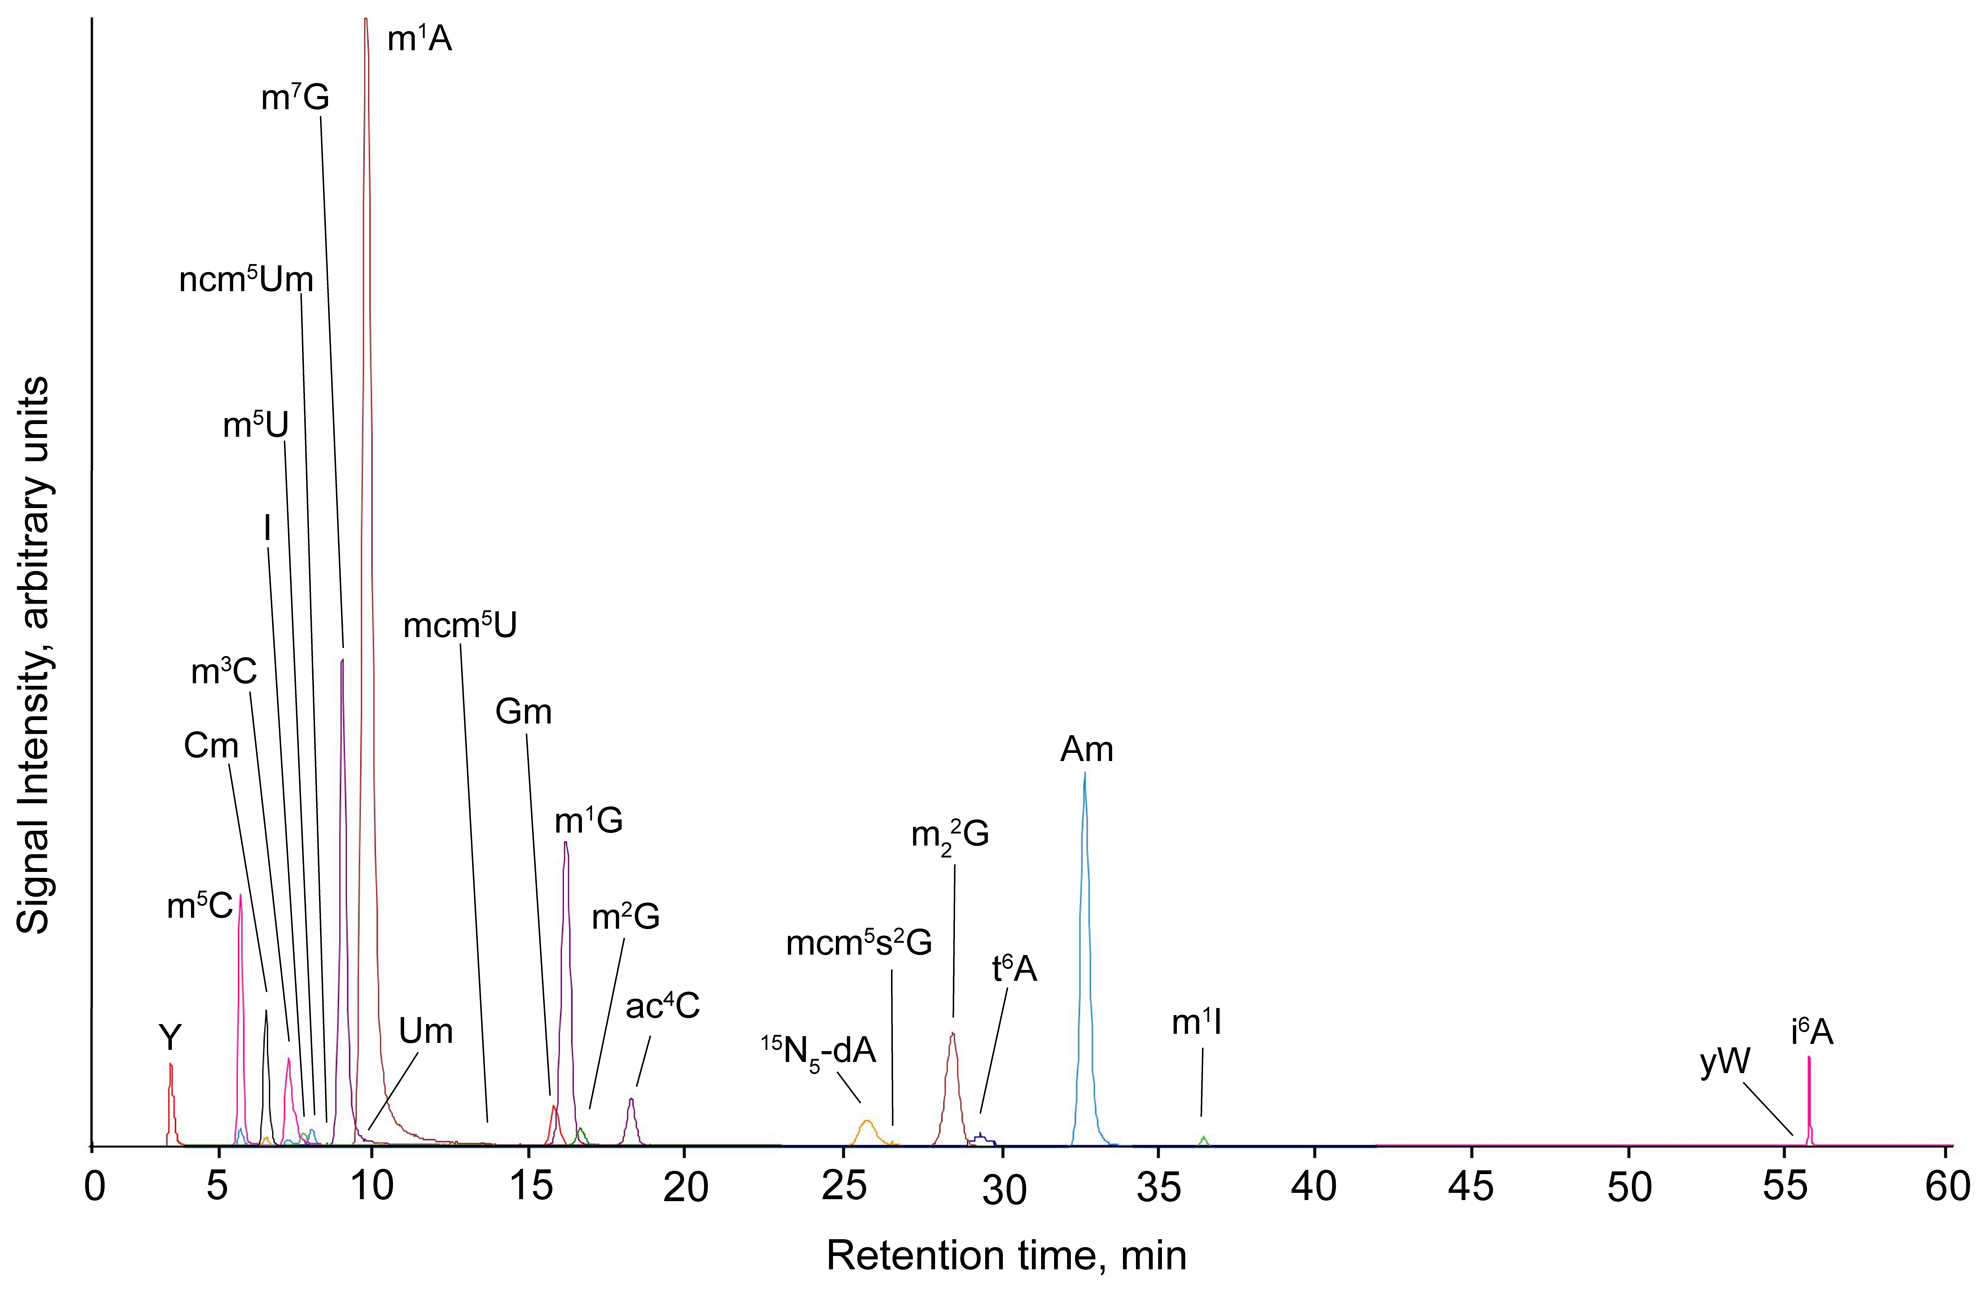 "Total ion chromatogram from LC-MS/MS analysis of yeast tRNA ribonucleosides, as described in <em class=""ref"">Materials and Methods</em>."